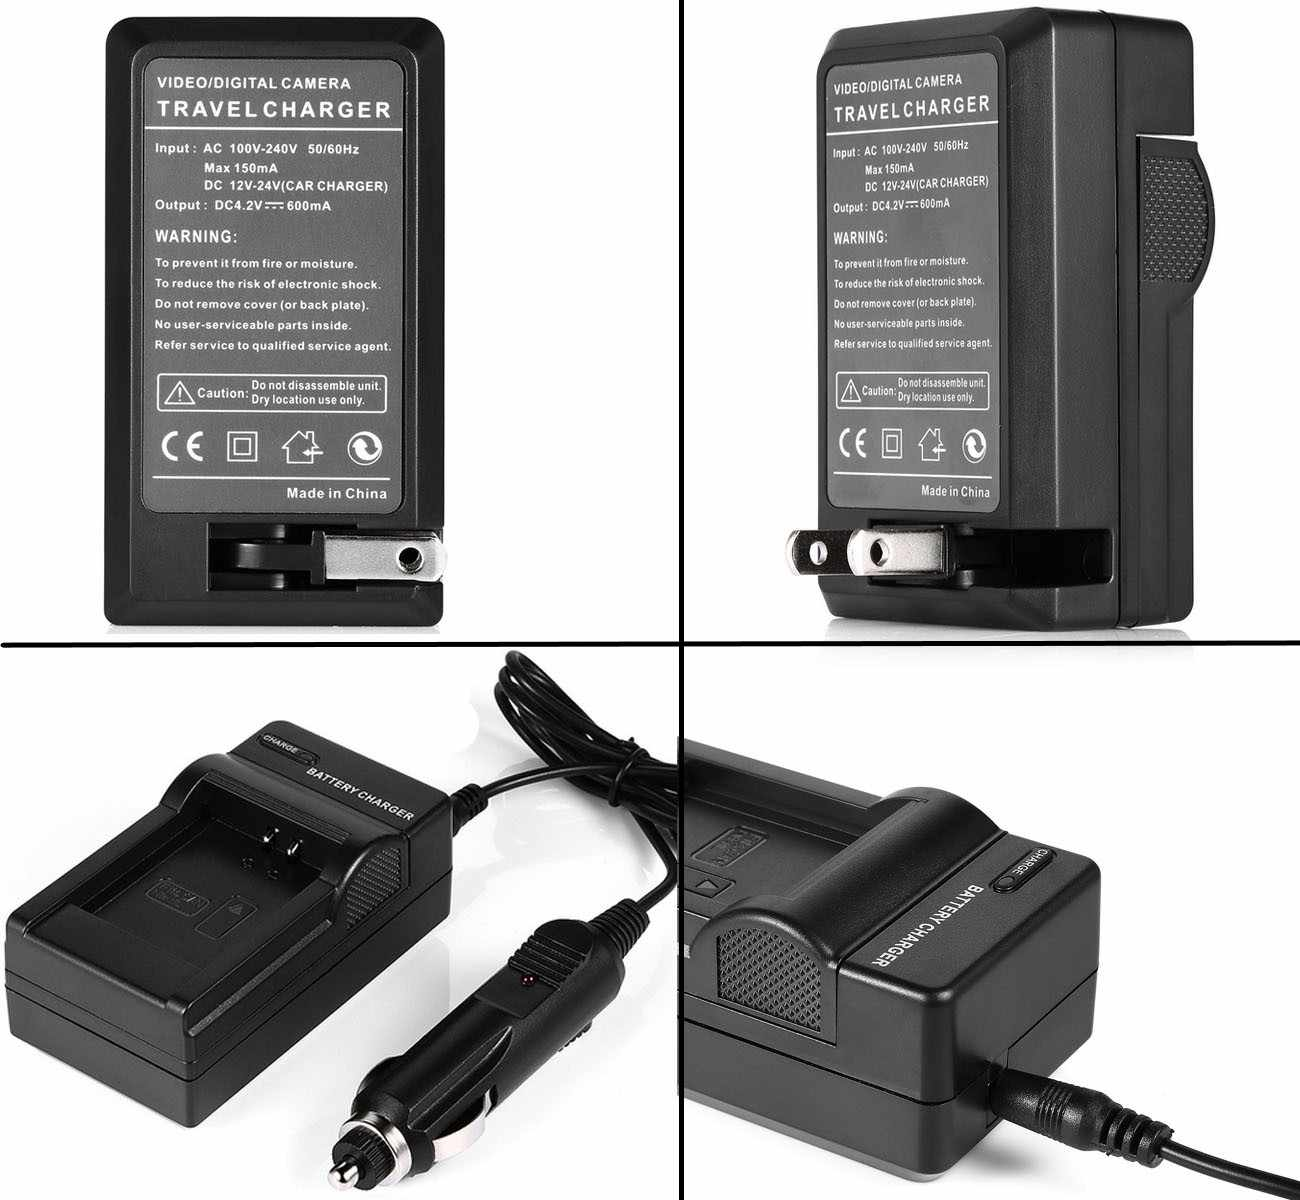 GZ-MG575U Camcorder GZ-MG555U GZ-MG335U GZ-MG275U GZ-MG175U Micro USB Battery Charger for JVC Everio GZ-MG150U GZ-MG465U GZ-MG255U GZ-MG155U GZ-MG435U GZ-MG365U